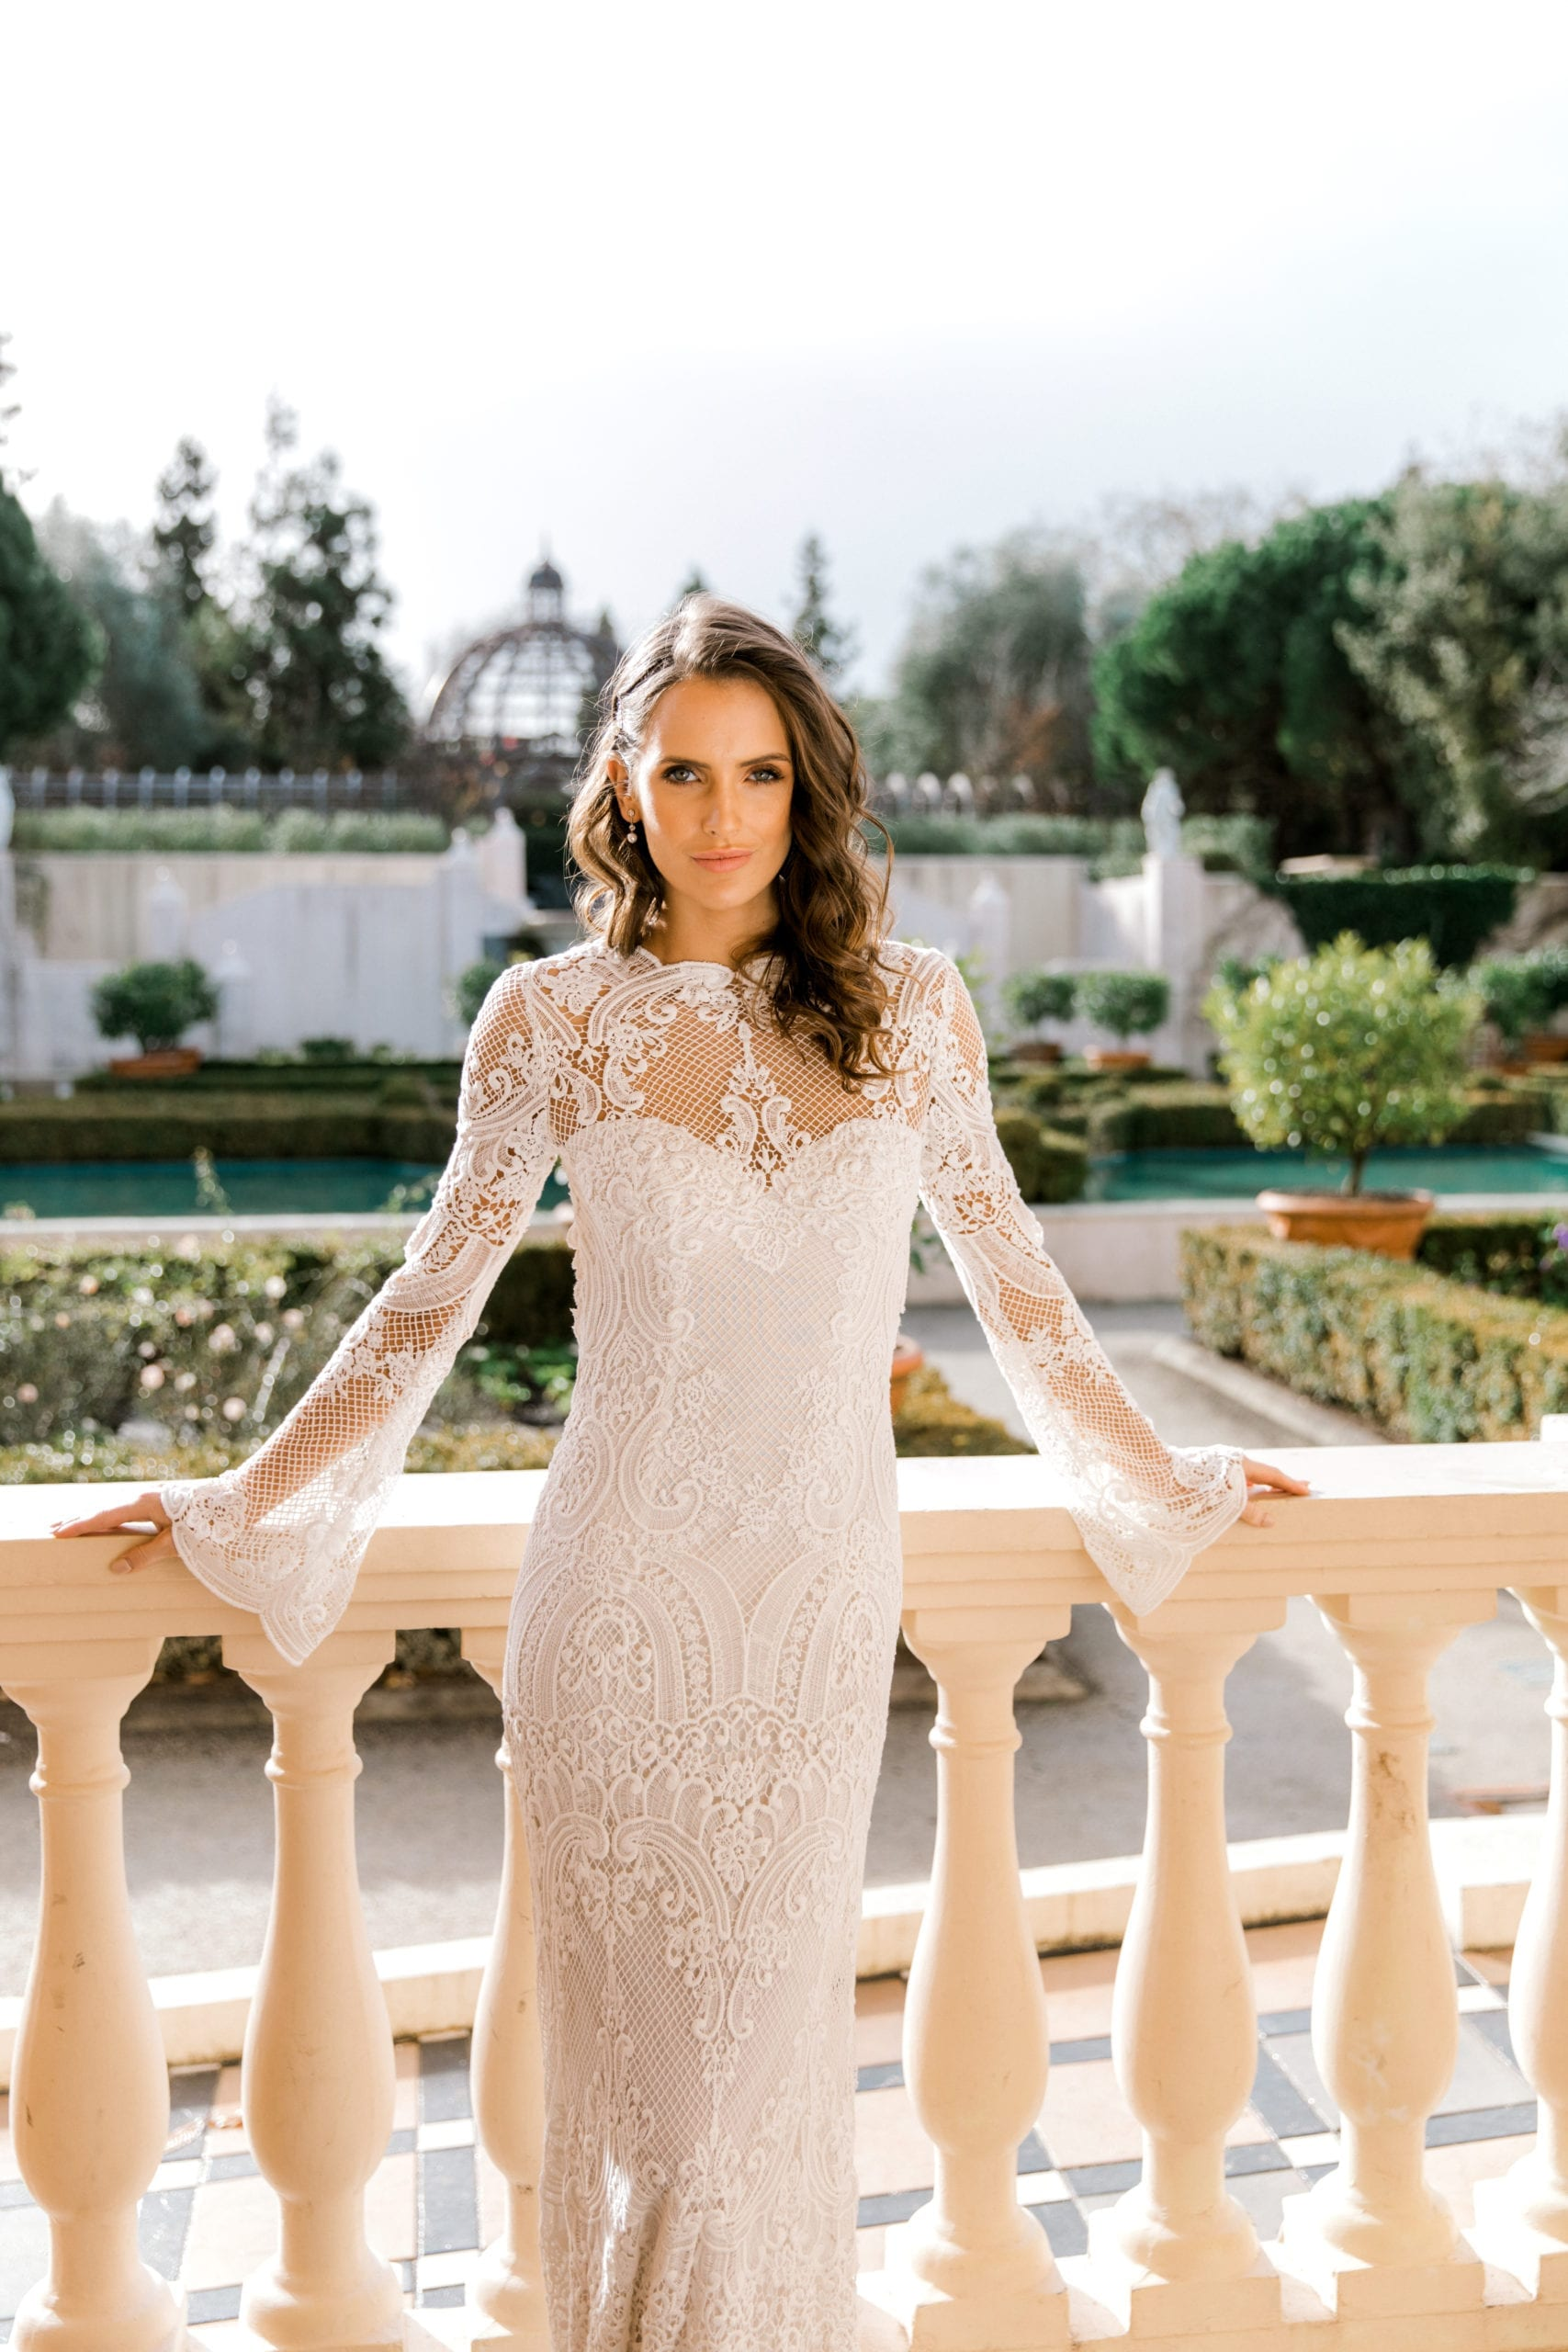 Model wearing Vinka Design Sabine Wedding Dress, a French Crochet Lace Wedding Gown leaning on balcony with garden behind